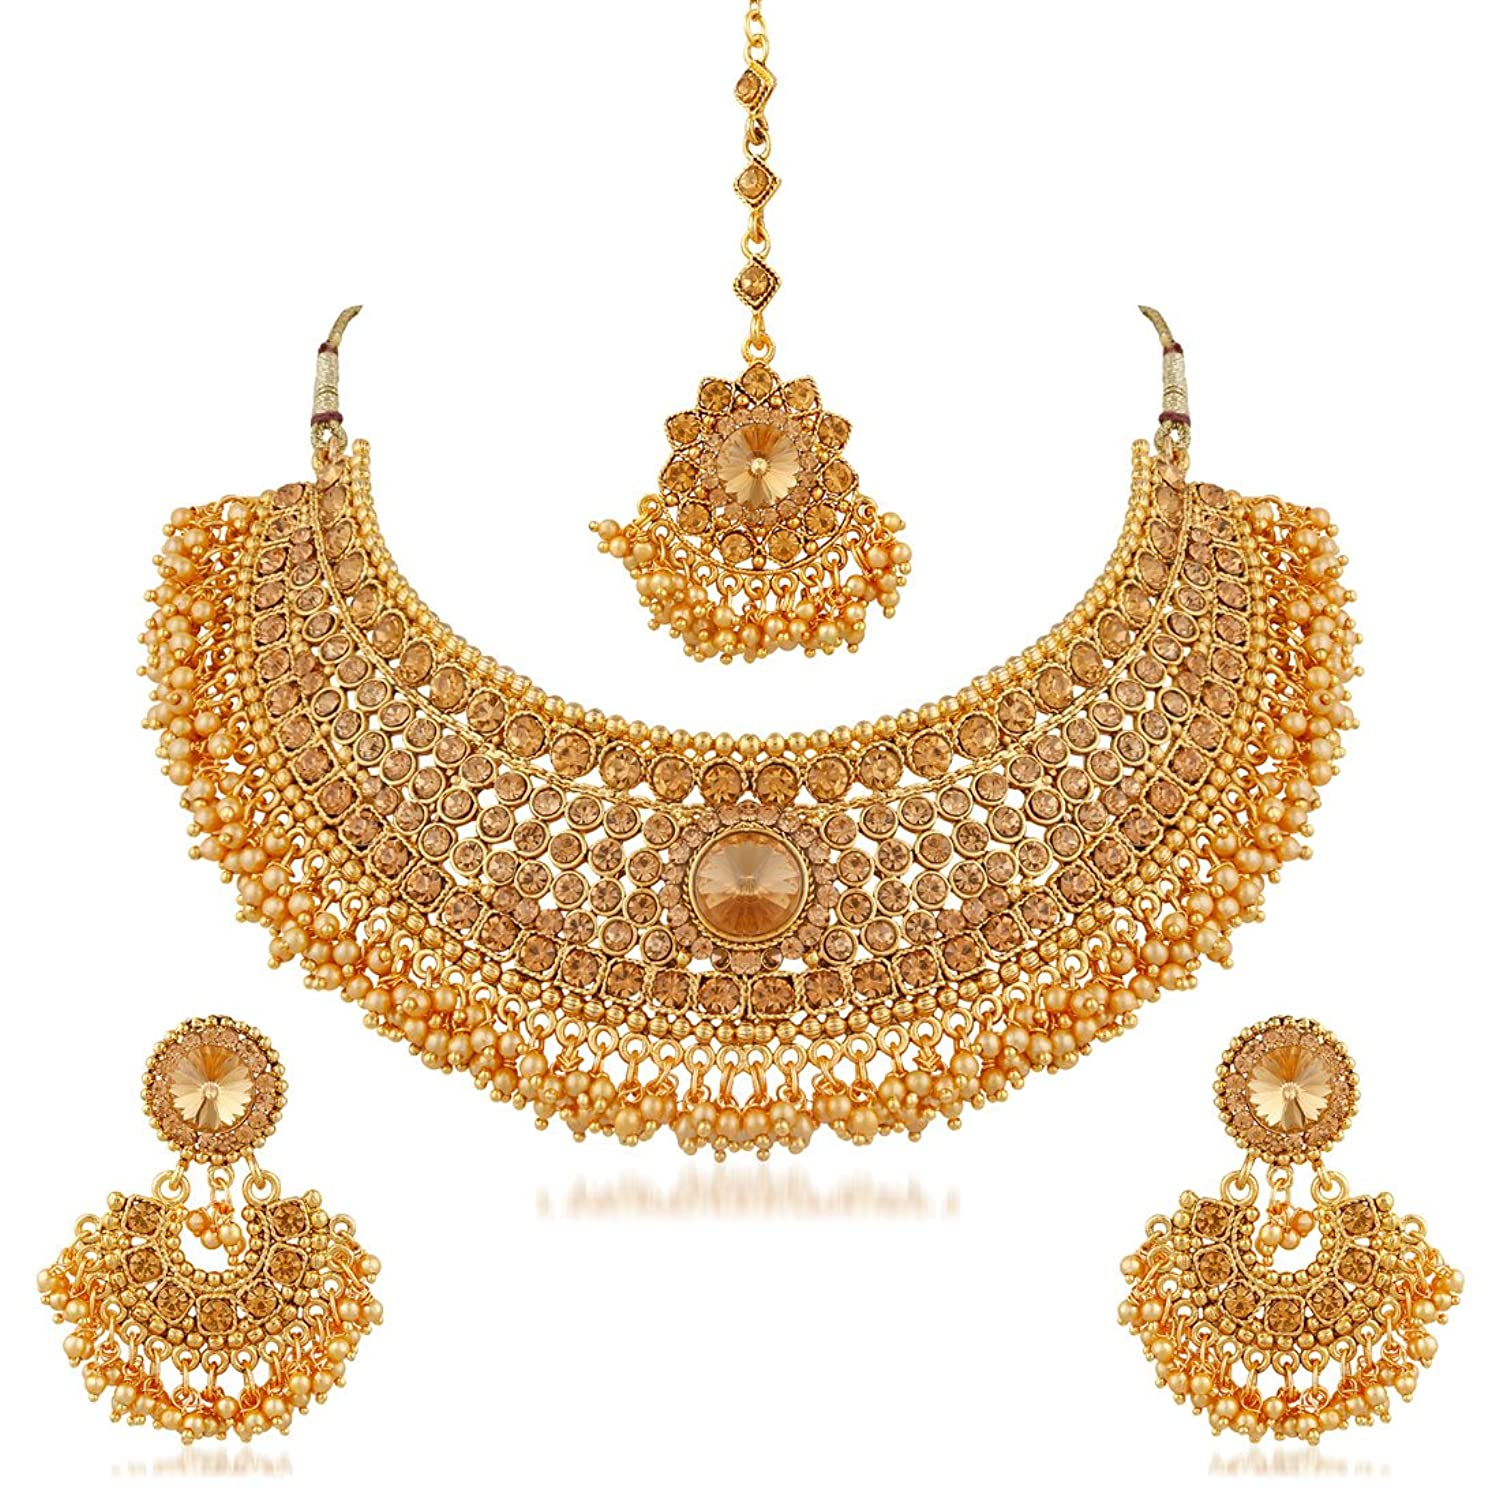 b4c46a2fdc9b9 Apara Bridal Gold Plated Pearl LCT Stones Necklace Jewellery Set For Women ( Golden)